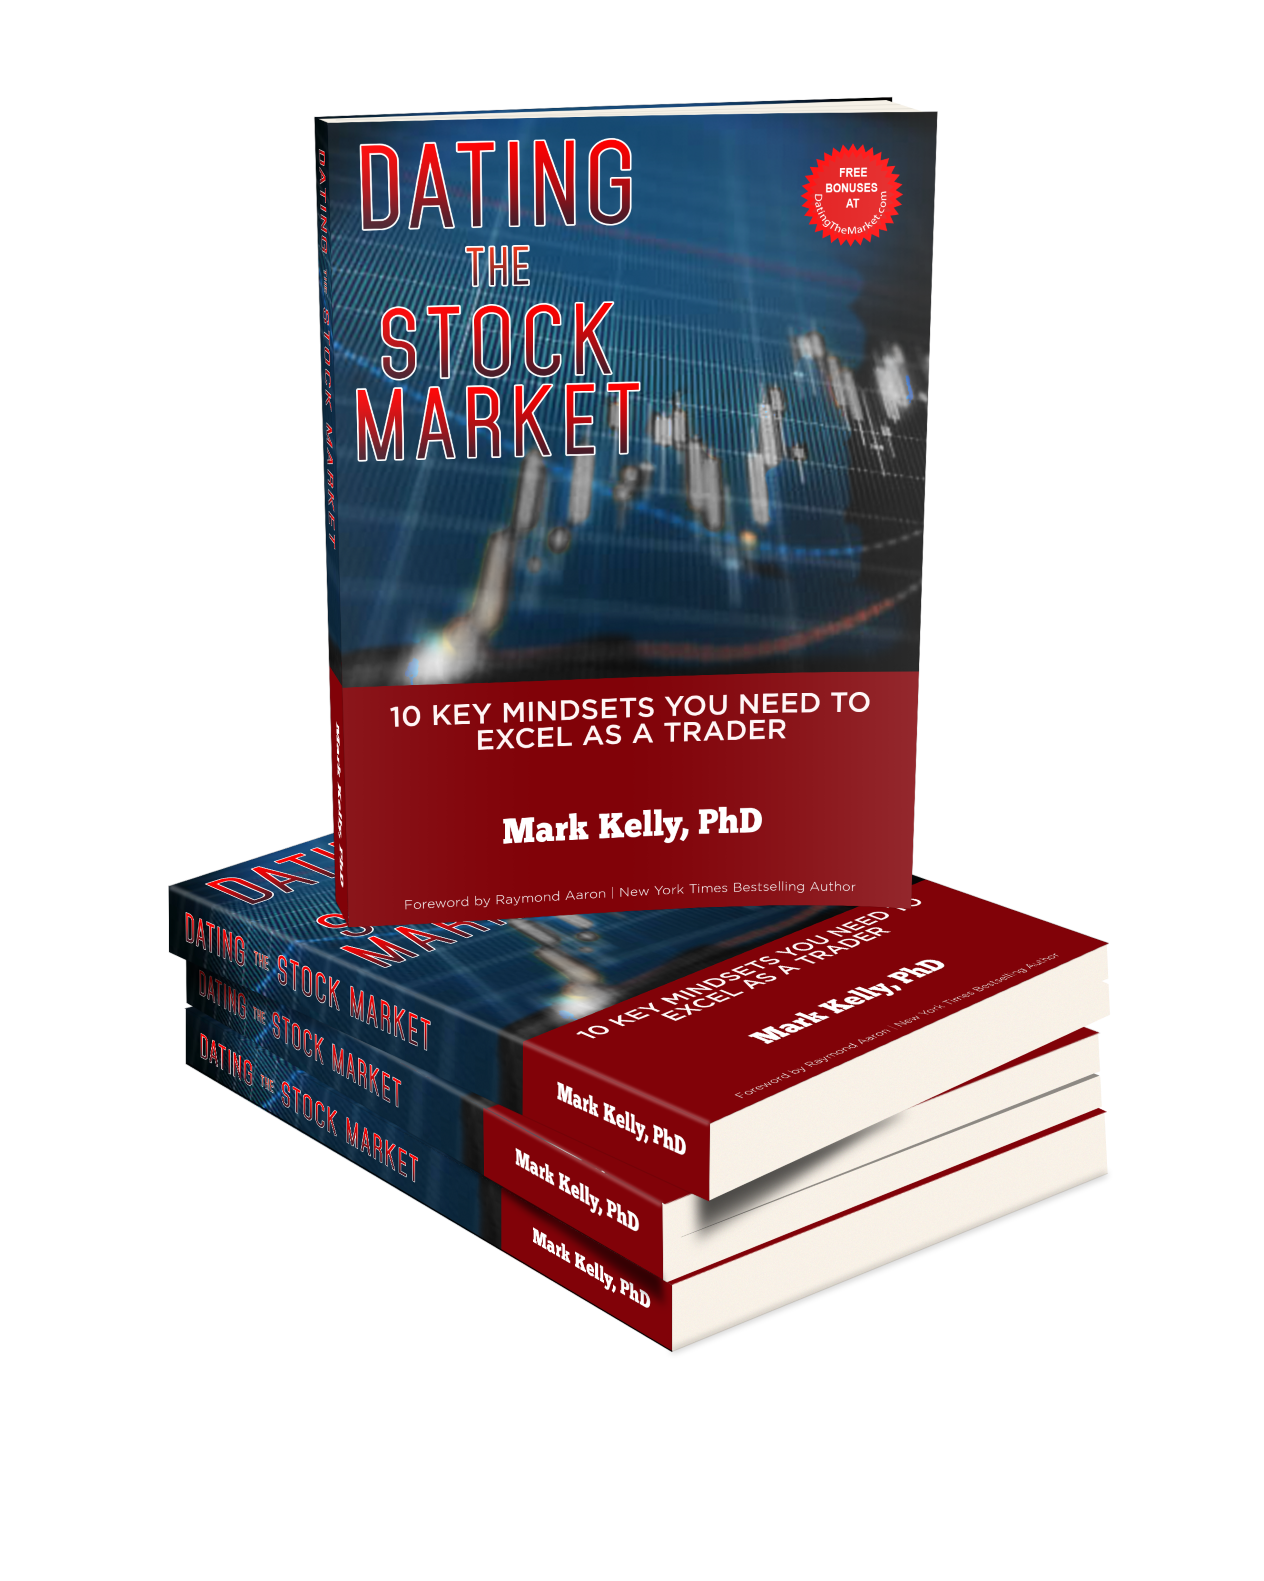 Dating the Stock Market - Book cover image